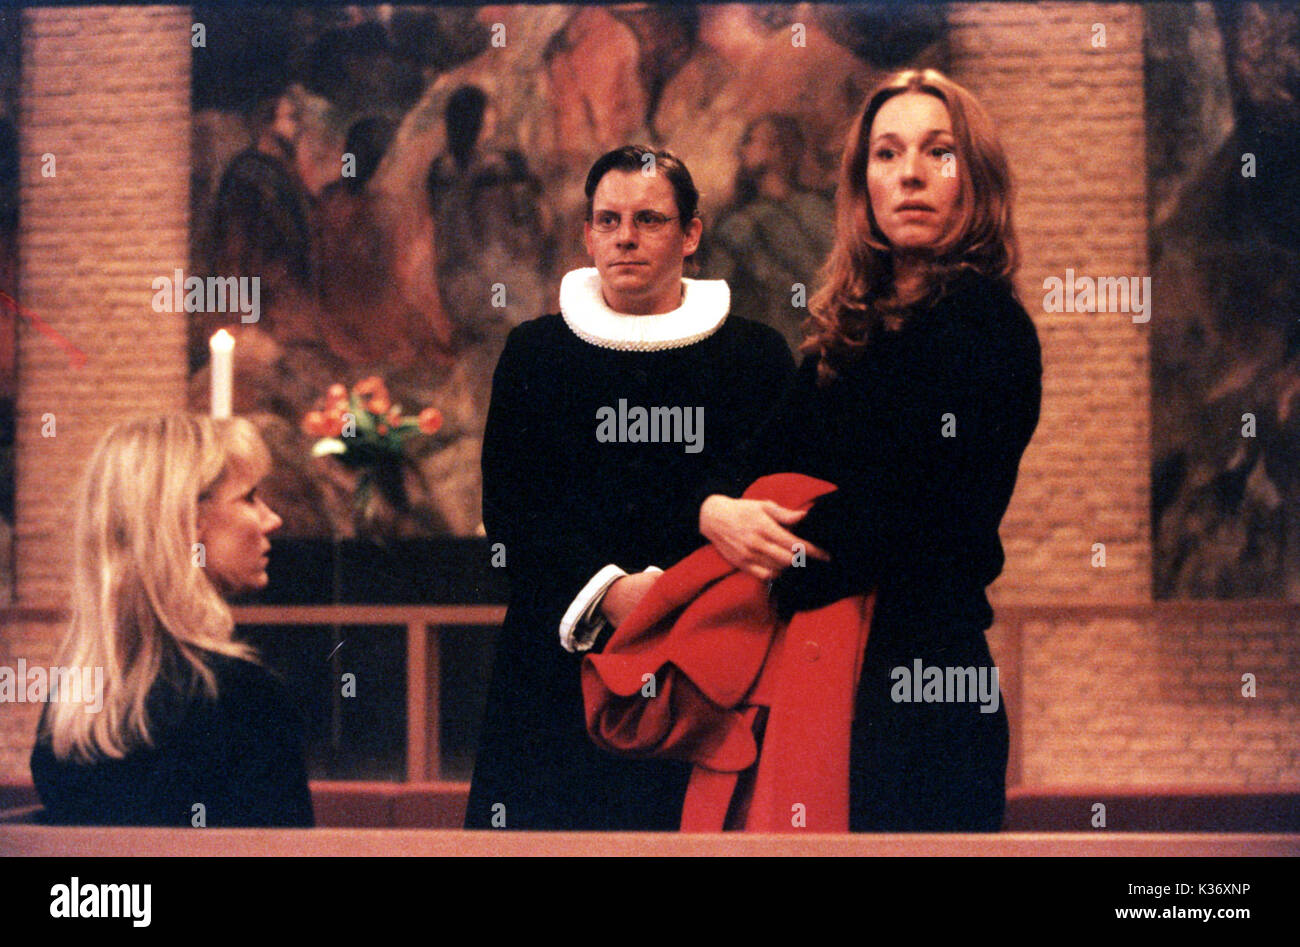 ITALIAN FOR BEGINNERS ANETTE STOVELBAEK, BENT MEJDING AND ANN ELEONORA JORGENSEN PICTURE FORM THE RONALD GRANT ARCHIVE A ZENTROPA ENTERTAINMENT     Date: 2000 - Stock Image